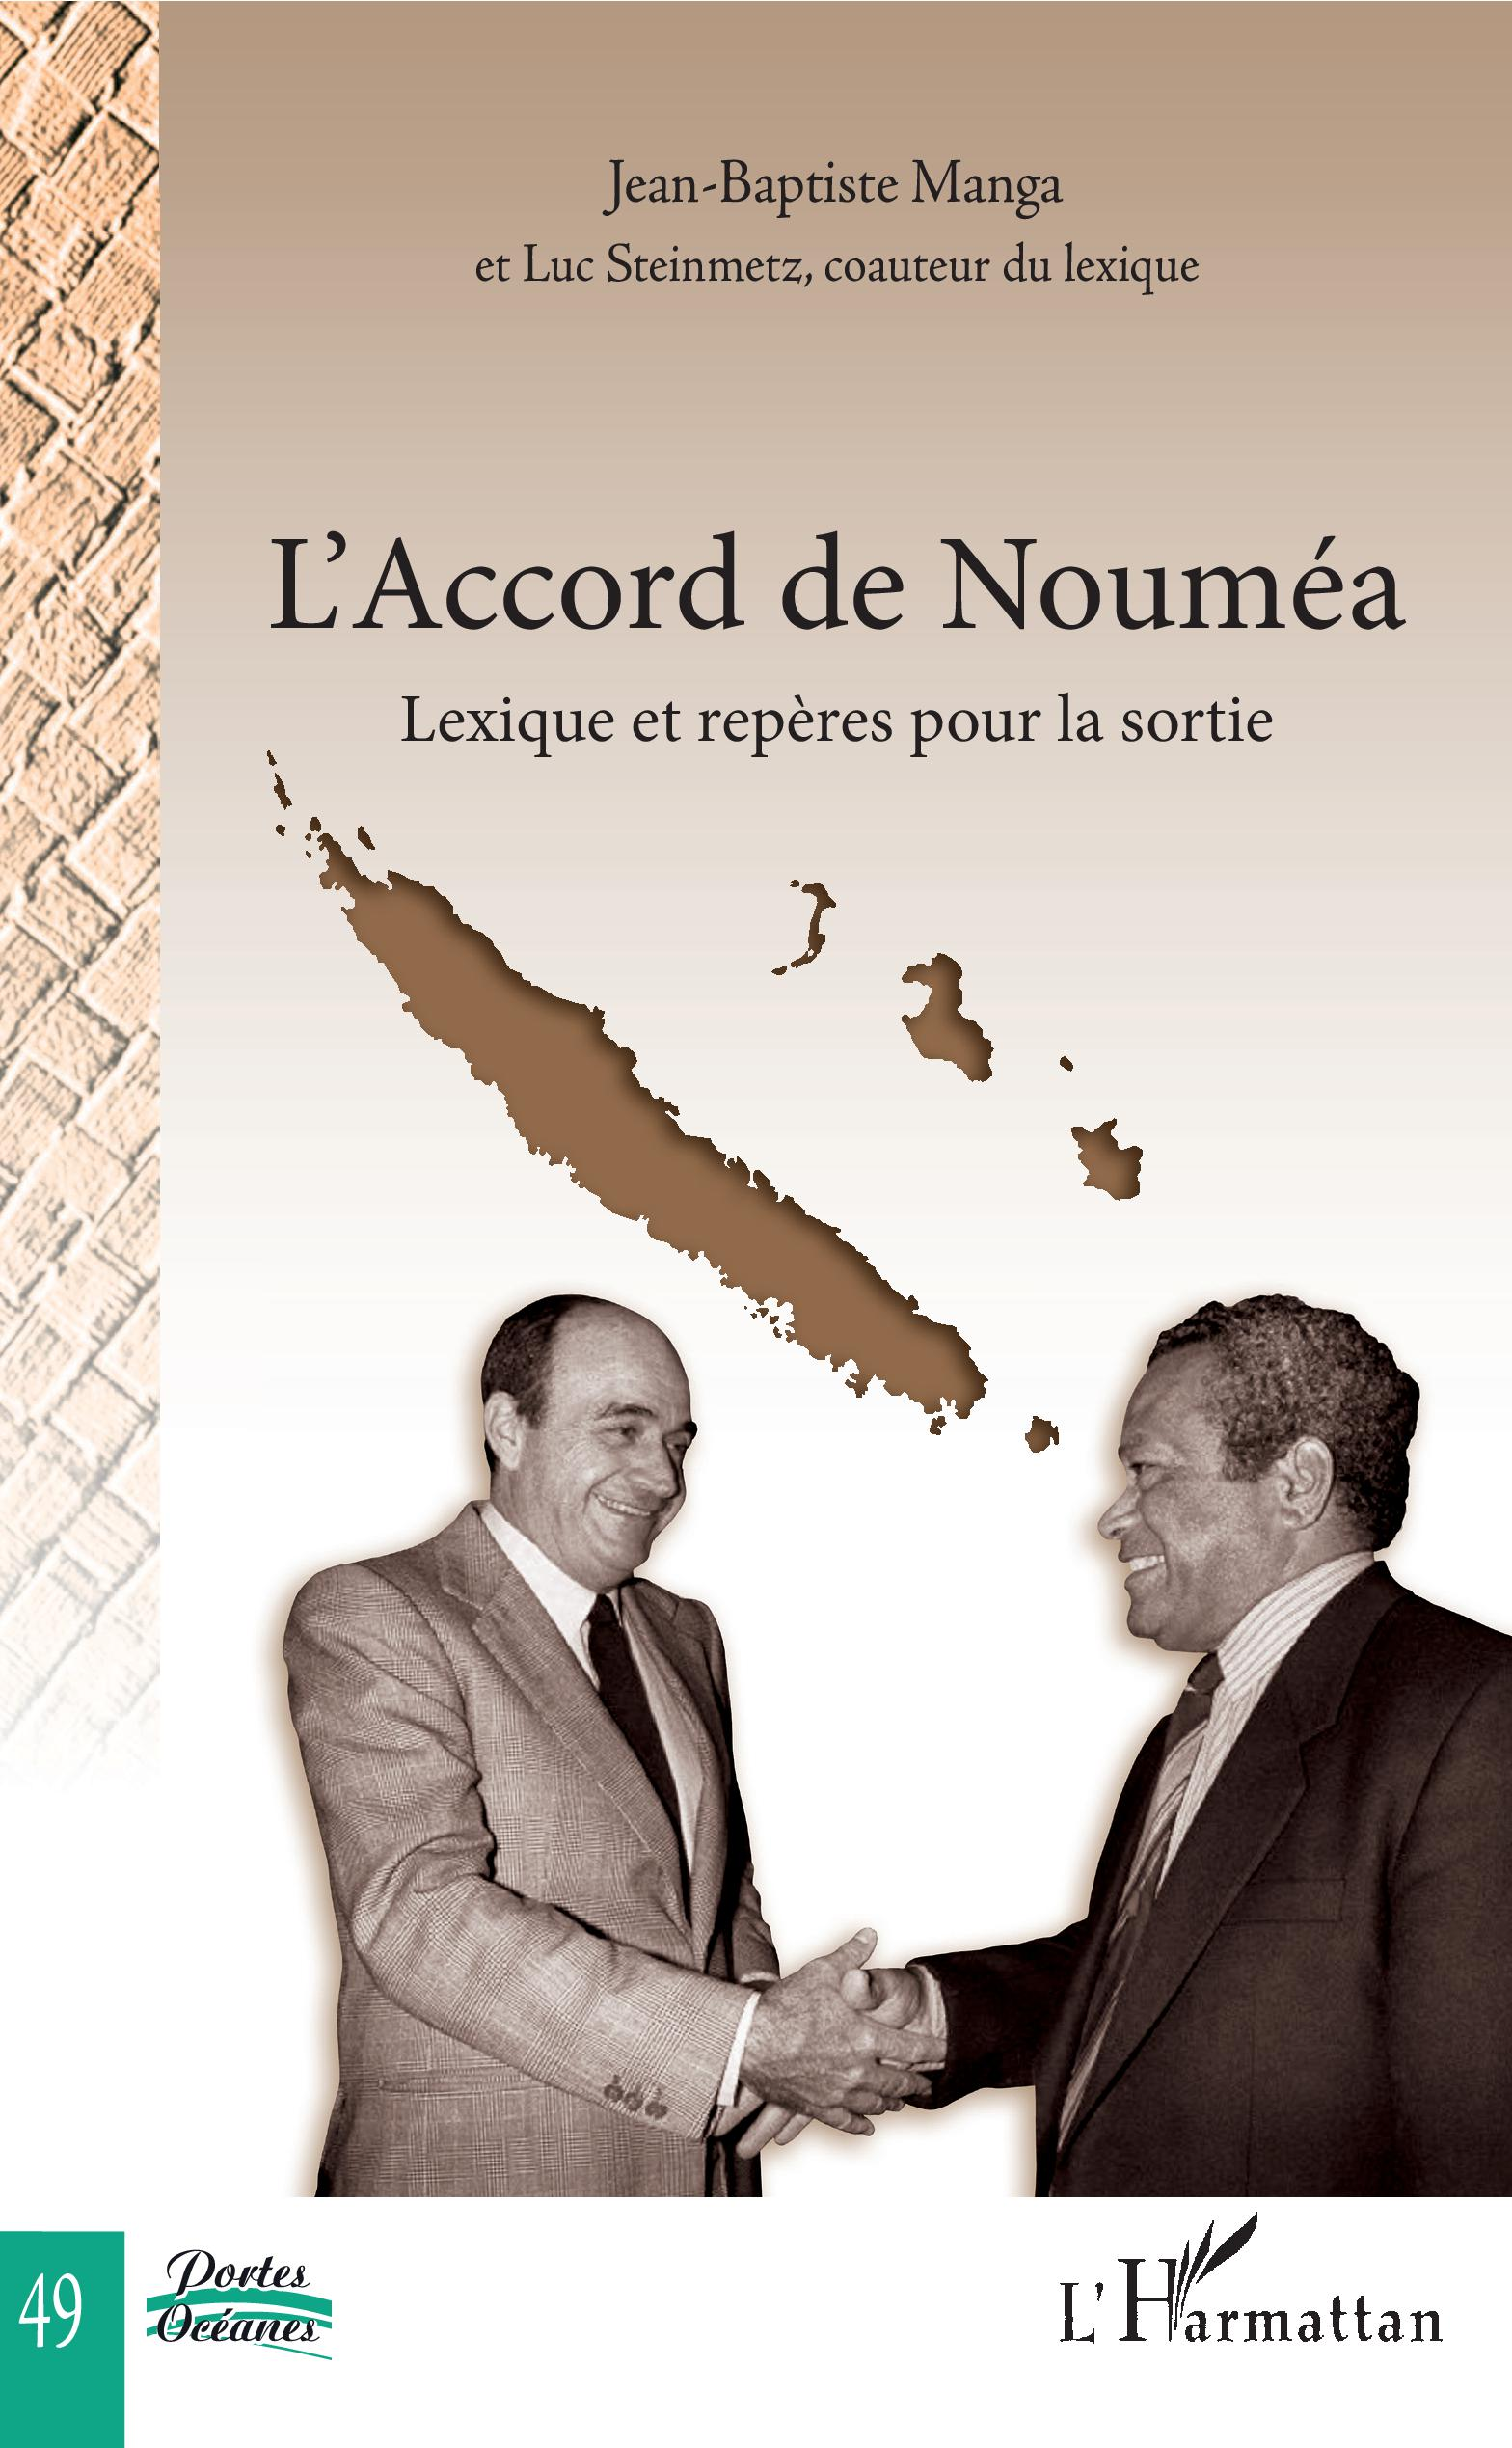 L'Accord de Nouméa